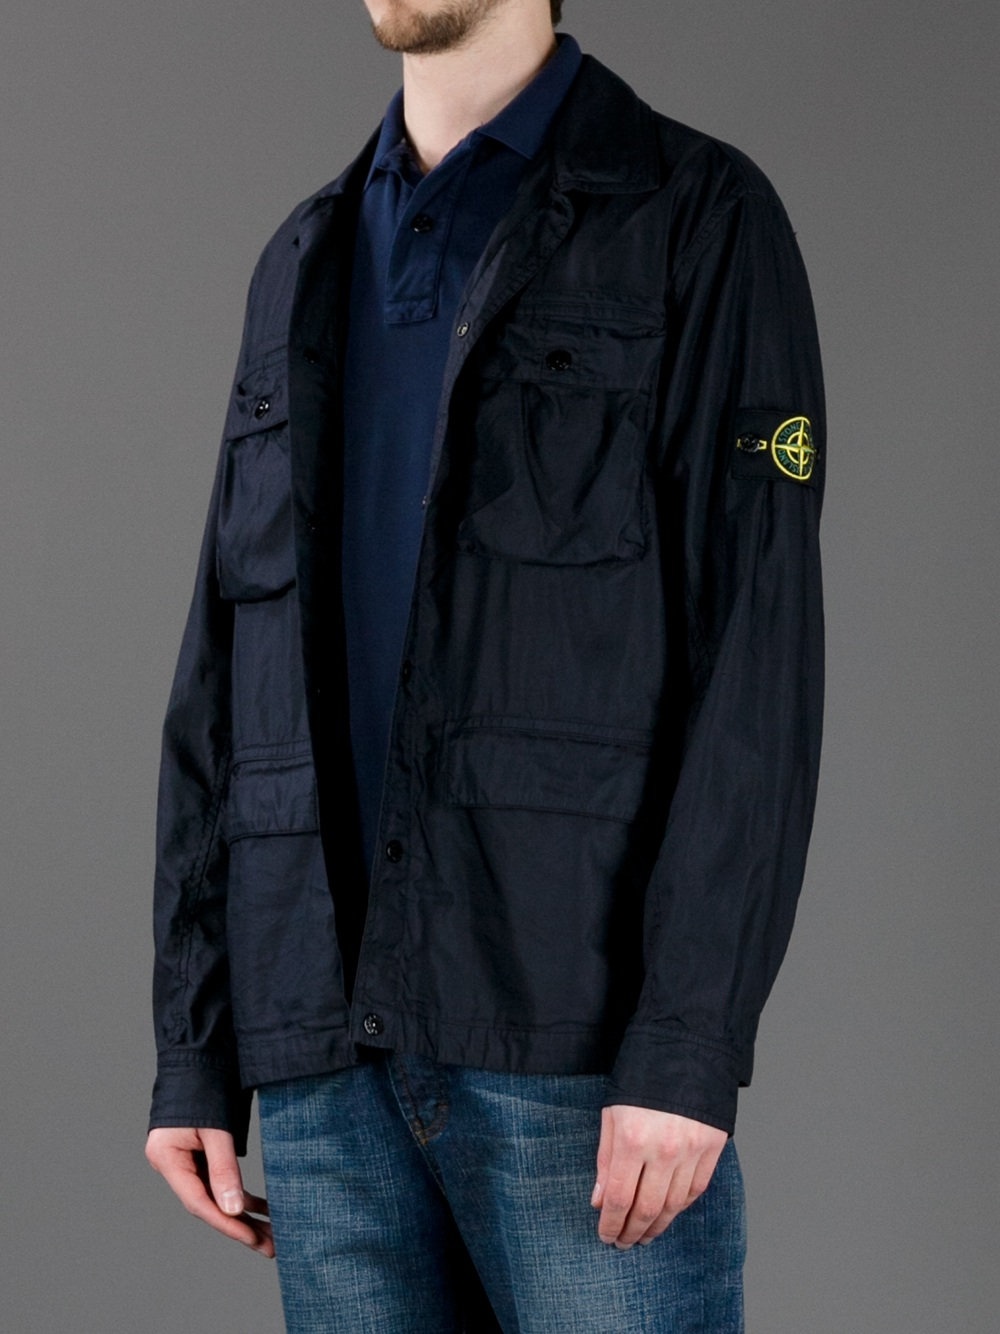 Stone Island Zip Up Jacket